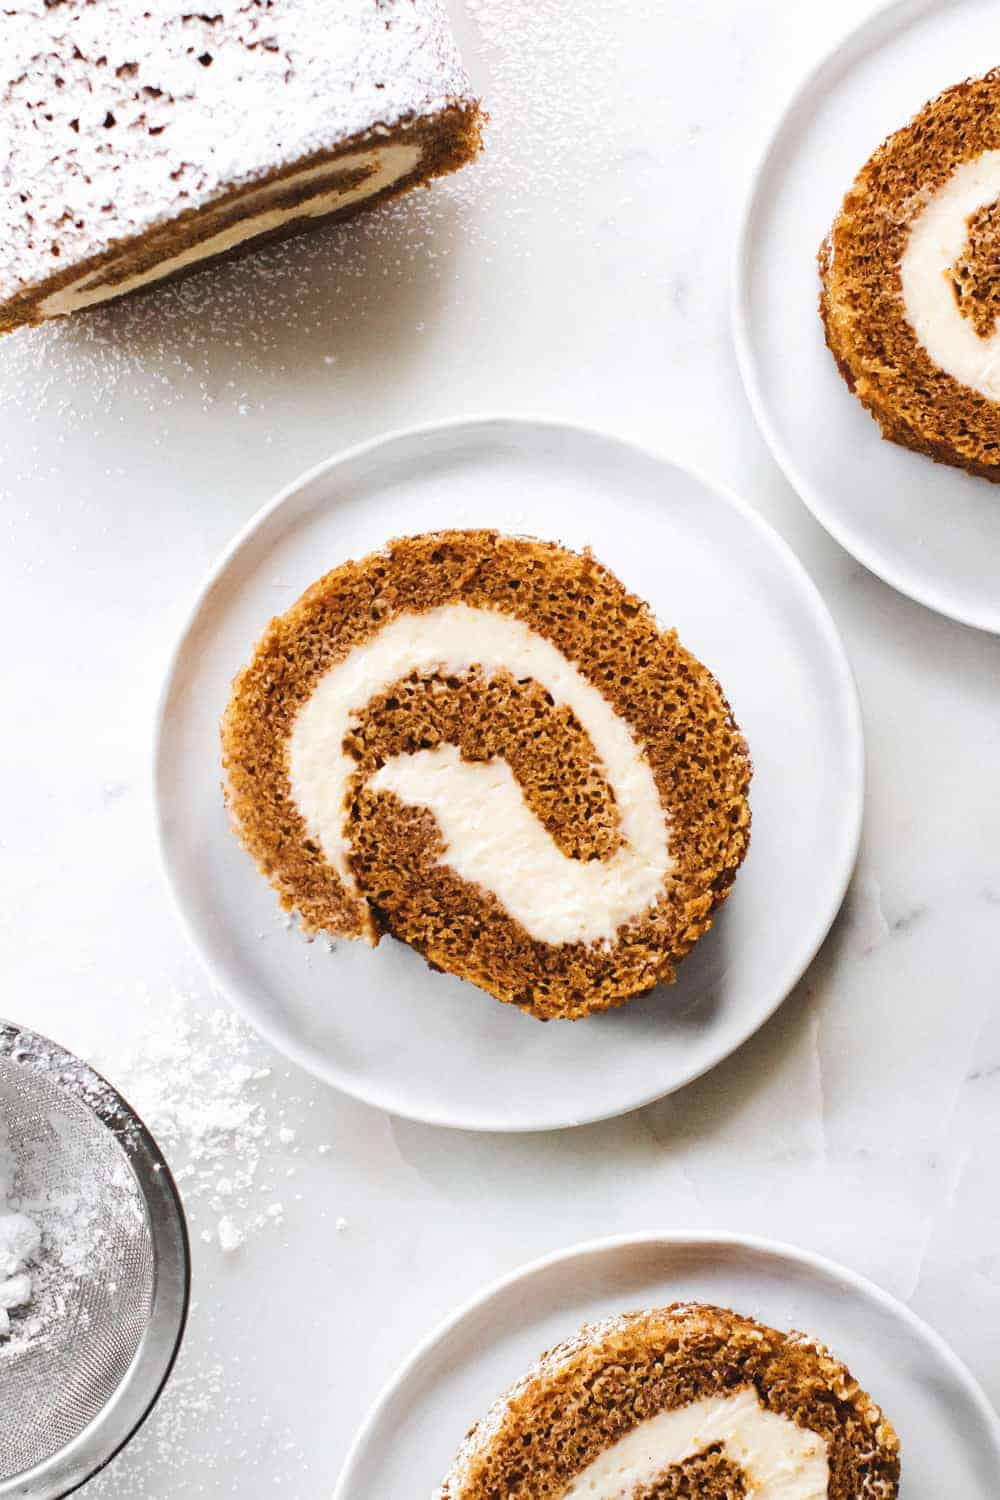 A classic pumpkin roll recipe complete with a delicious pumpkin cake and dreamy cream cheese filling.